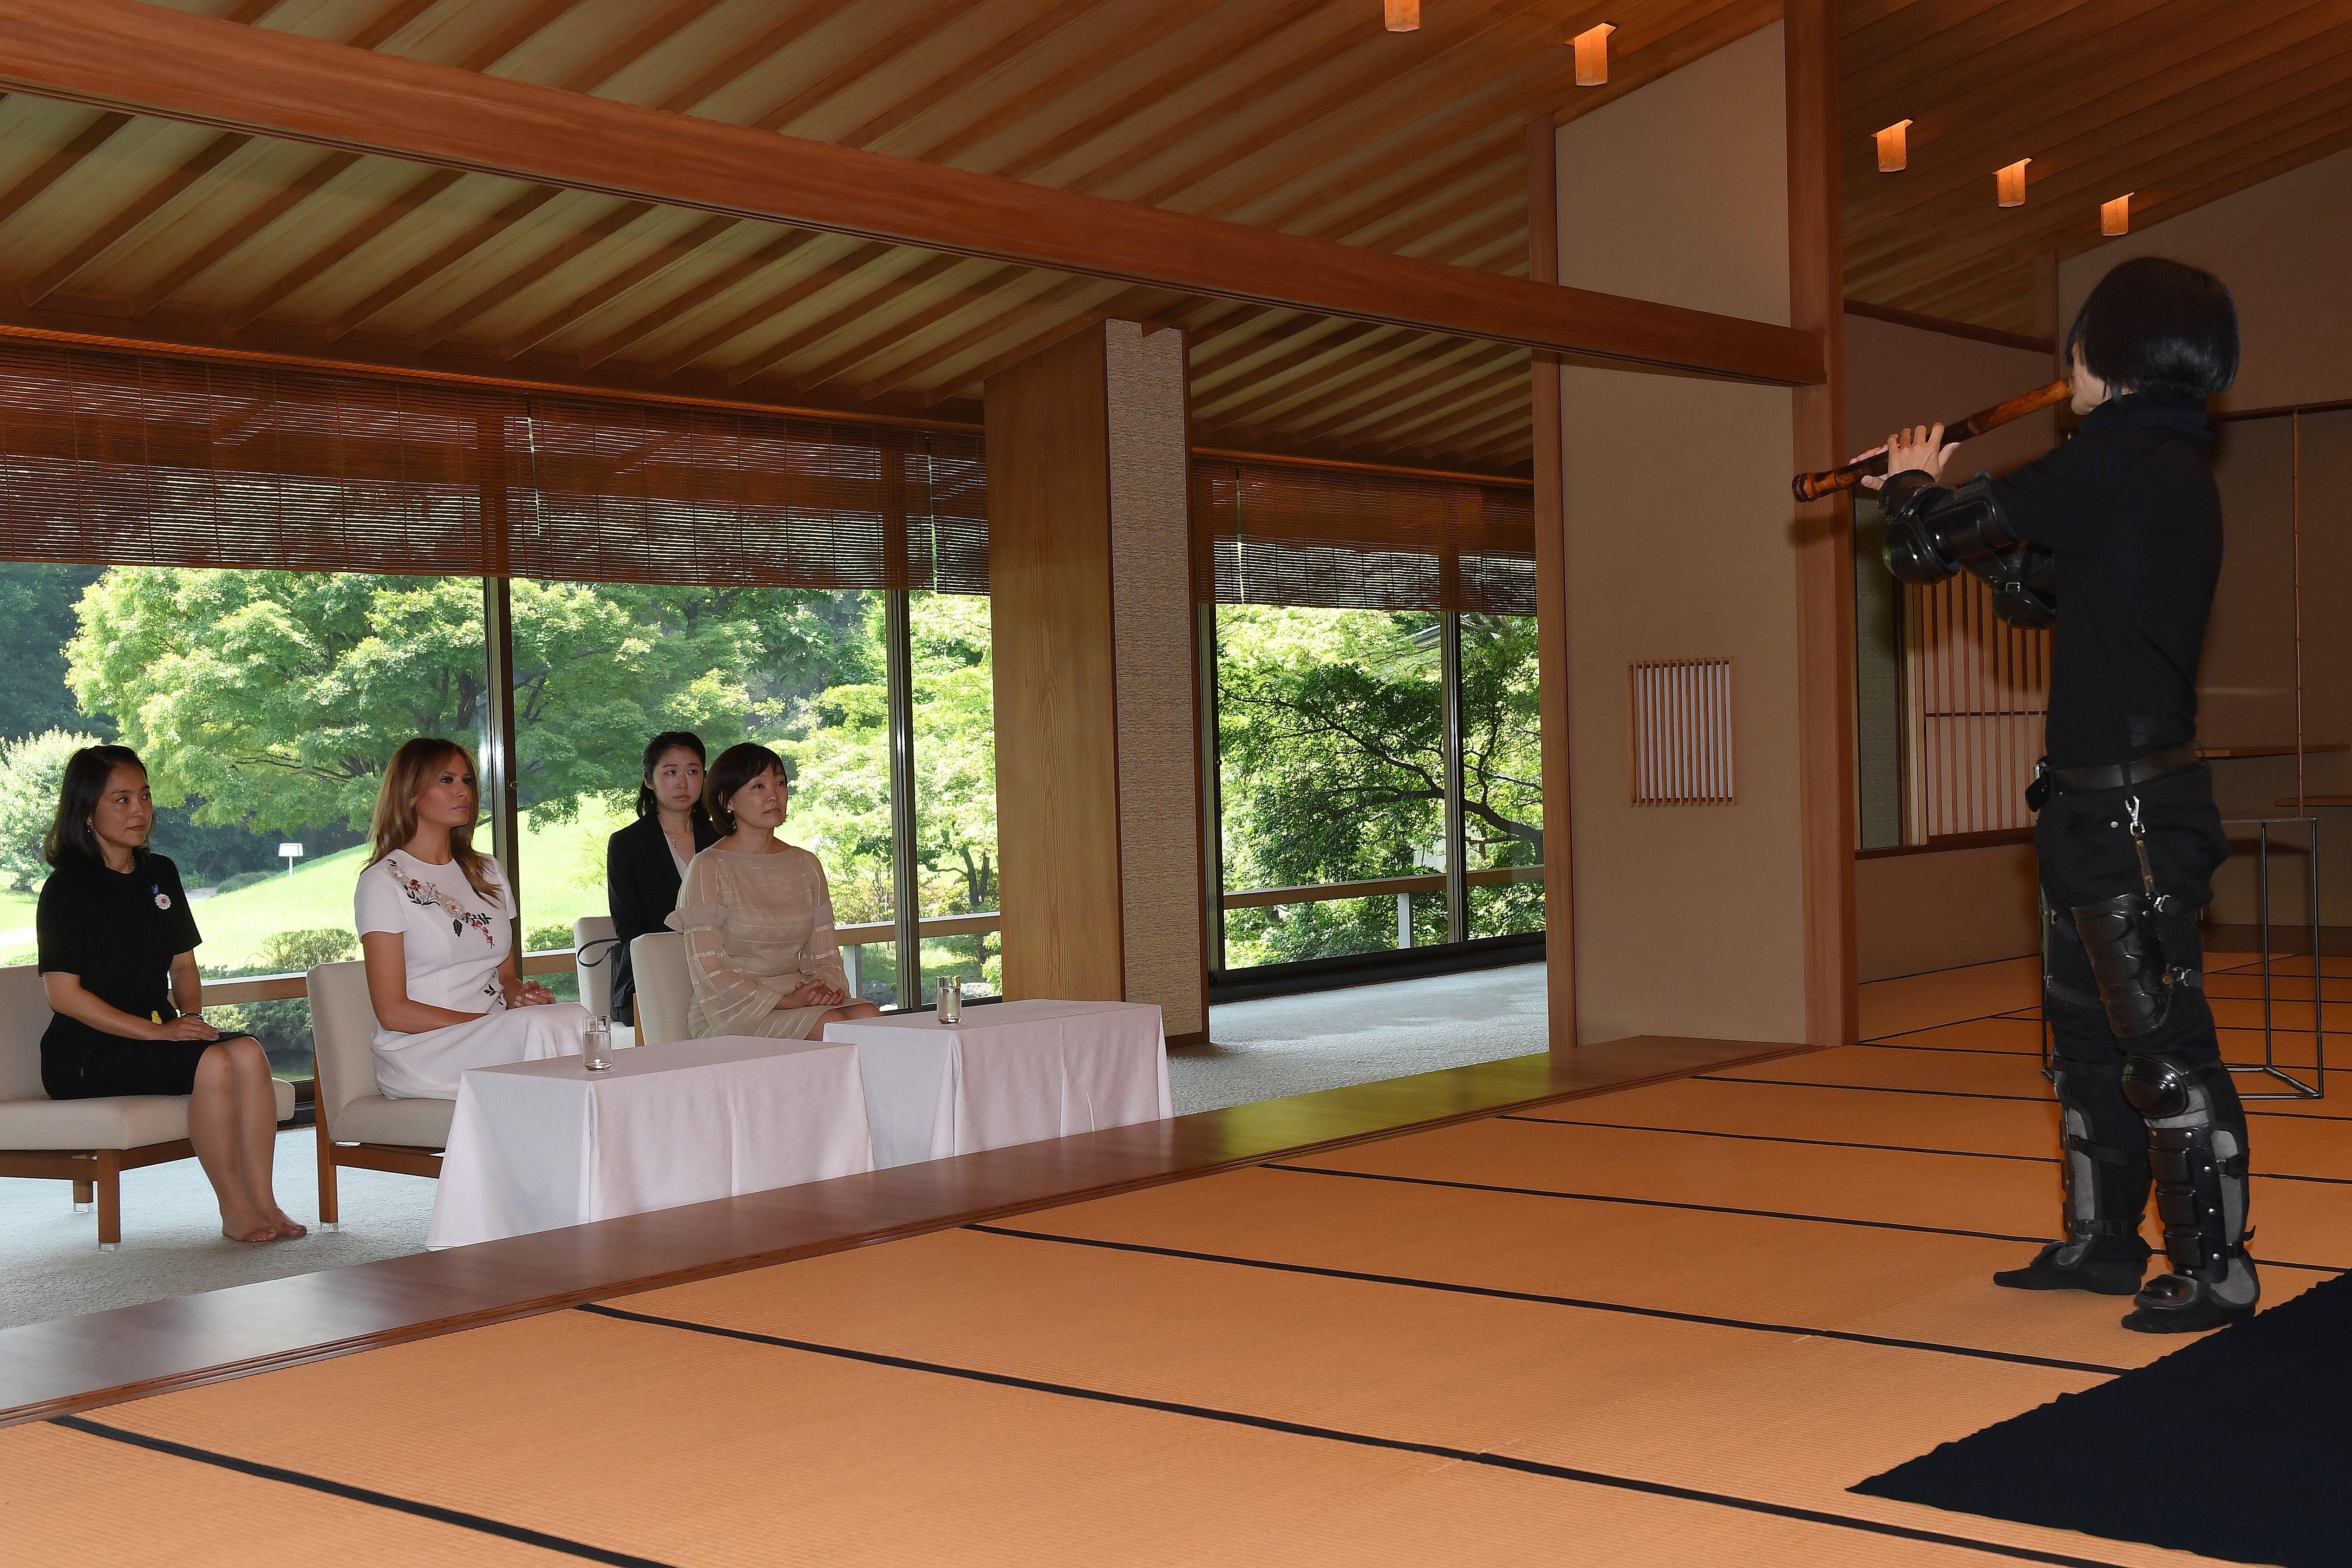 US First Lady Melania Trump (L) and Japan's Premier Shinzo Abe's wife Akie watch an artist play a traditional shakuhachi, bamboo-flute, in a Japanese style annex at Akasaka guest house in Tokyo on May 27, 2019. (Photo by TOSHIFUMI KITAMURA/AFP/Getty Images)